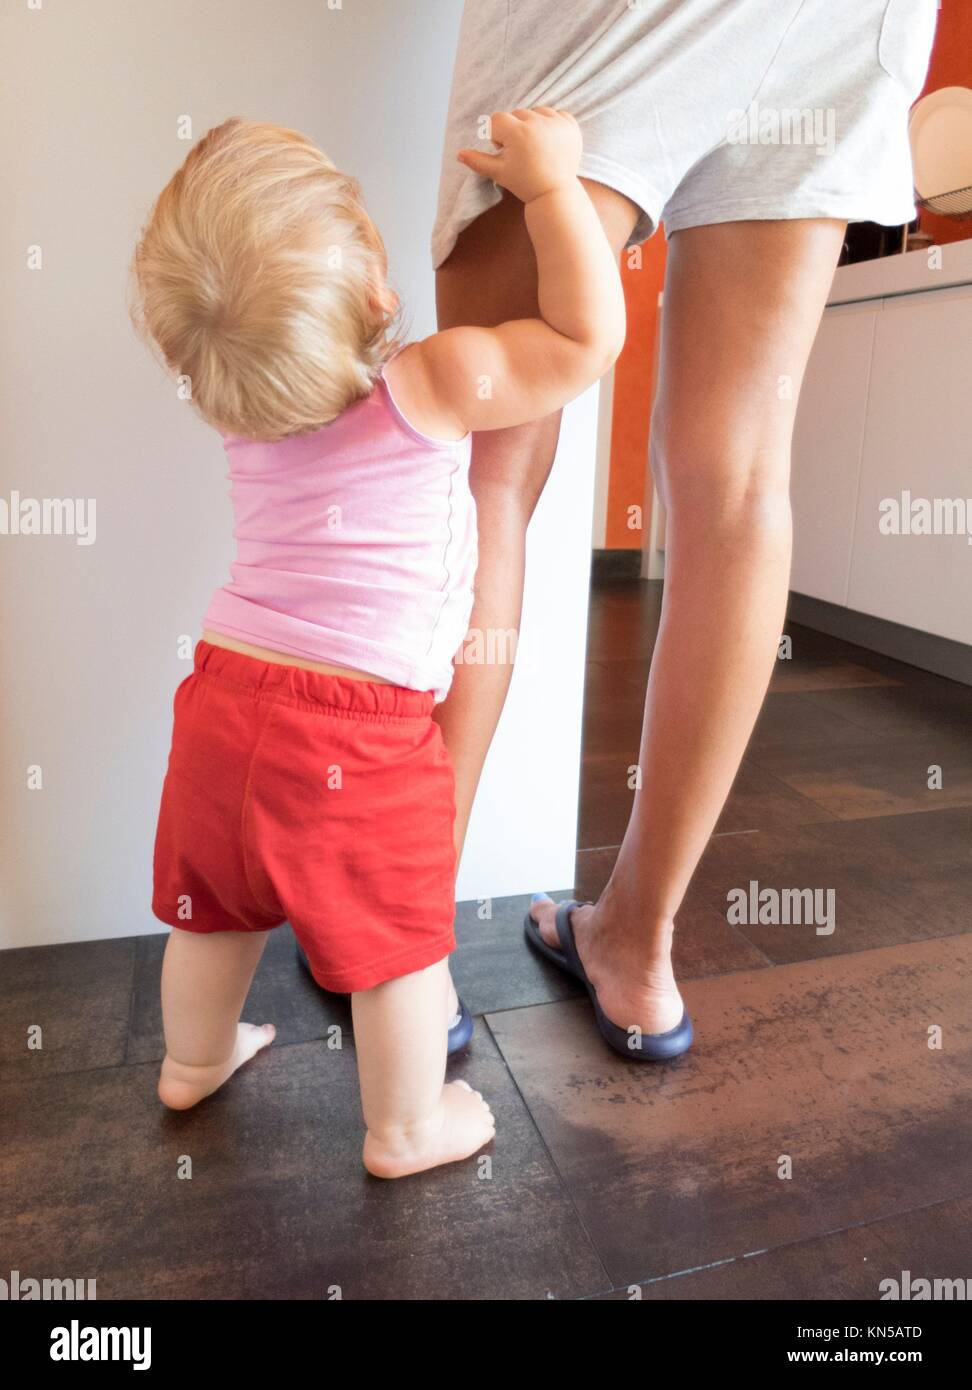 blonde baby red shorts clutching mom leg in white kitchen. - Stock Image